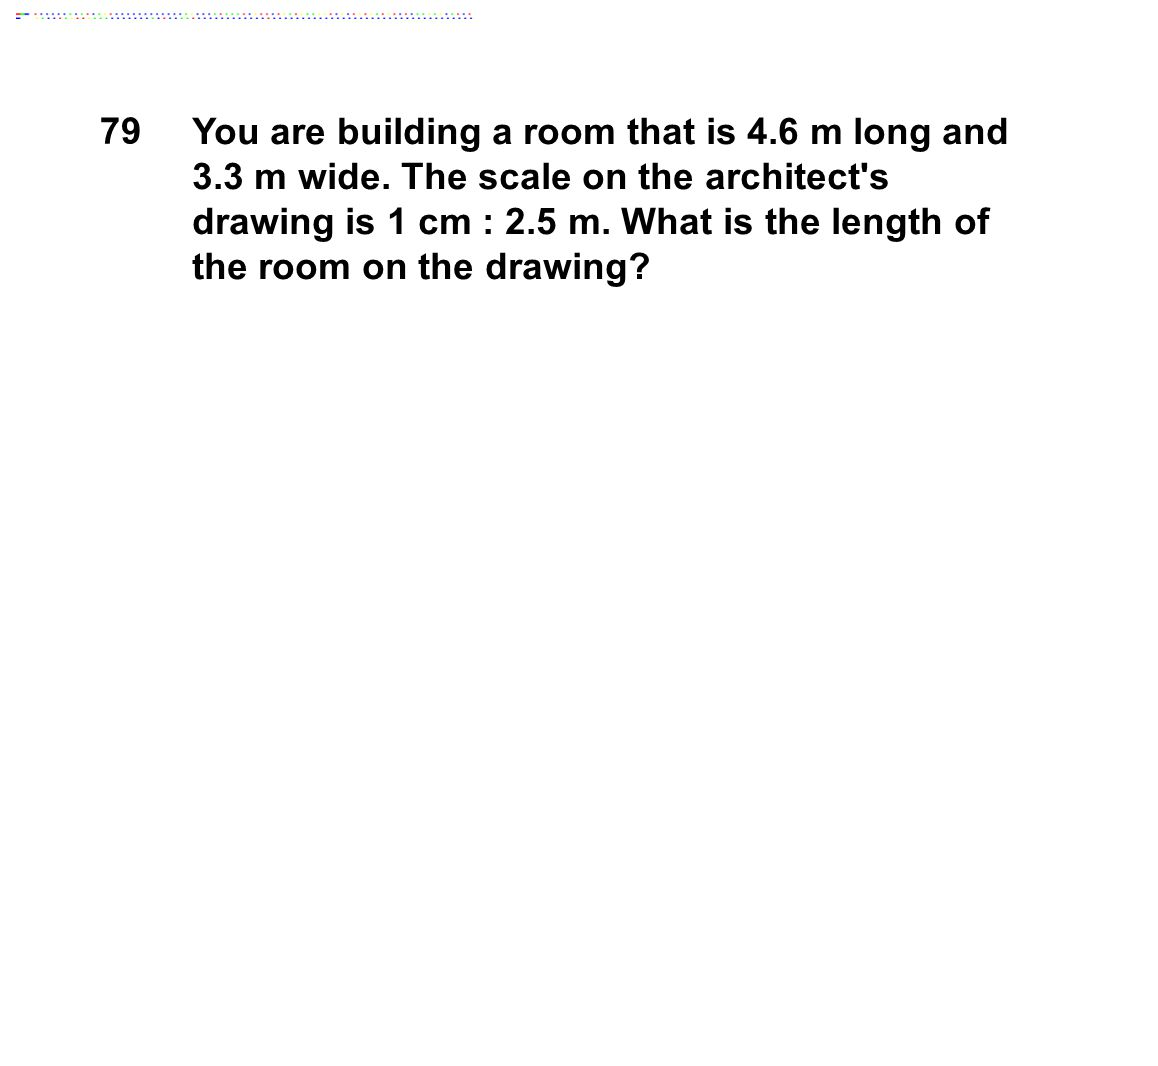 You are building a room that is 4.6 m long and 3.3 m wide. The scale on the architect's drawing is 1 cm : 2.5 m. What is the length of the room on the